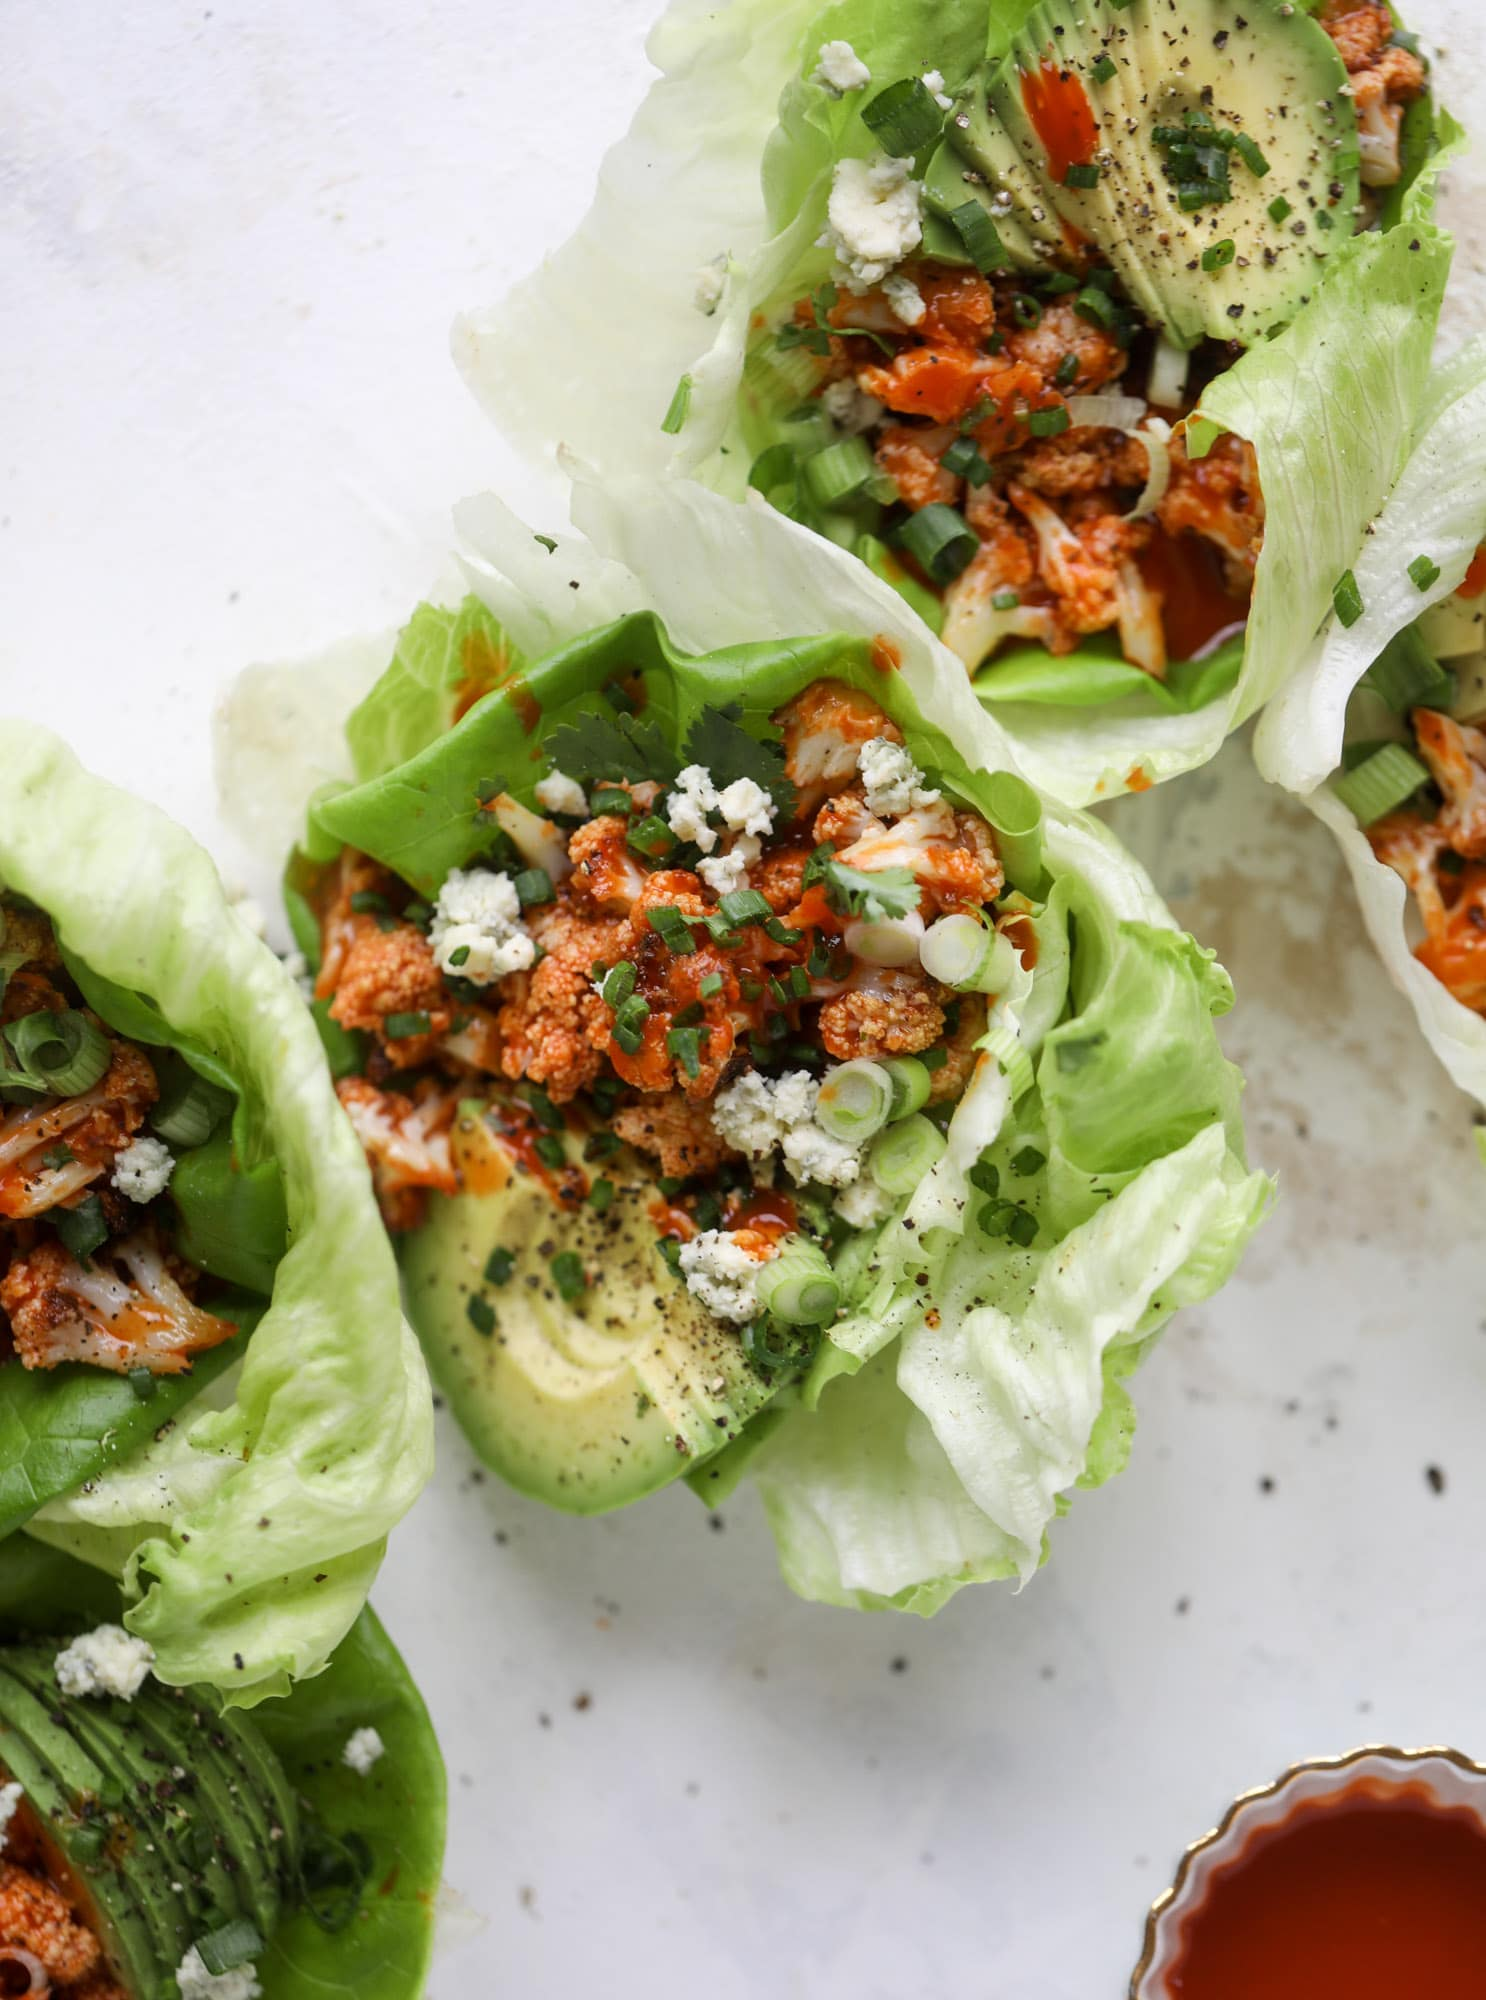 These buffalo cauliflower lettuce wraps are perfect for game day or even a quick weeknight dinner. Roasted cauliflower with buffalo wing sauce, sliced avocado, crumbled blue cheese, scallions, cilantro and chives makes for a flavor explosion! I howsweeteats.com #buffalo #cauliflower